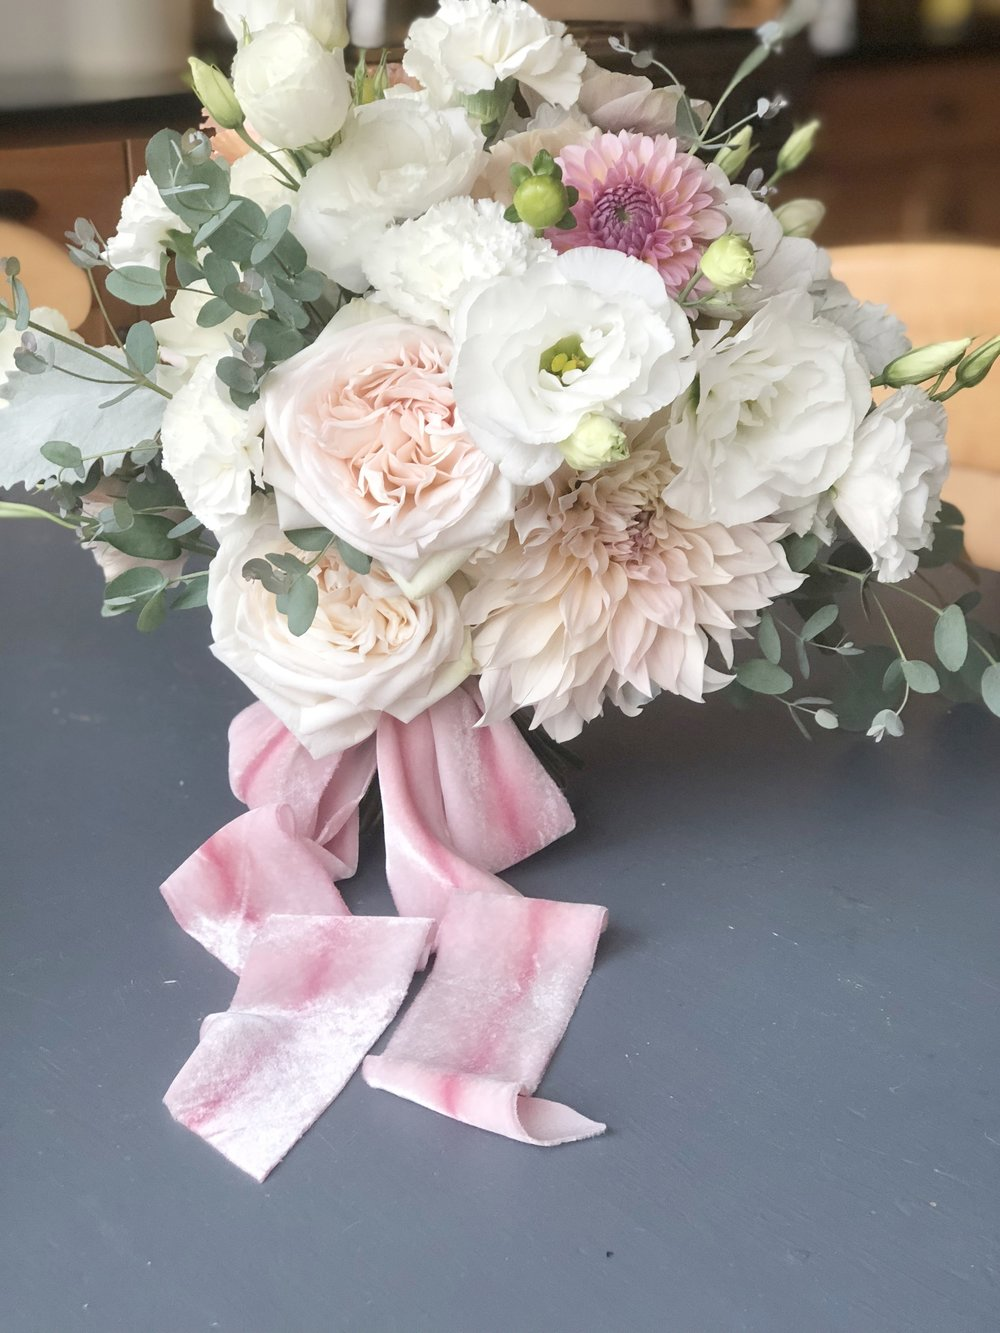 We love the to support local Stillwater businesses. For this wedding we used flowers from Arcola Trail Flower Farm and Rose Mille a local vintage shop for the ribbons!